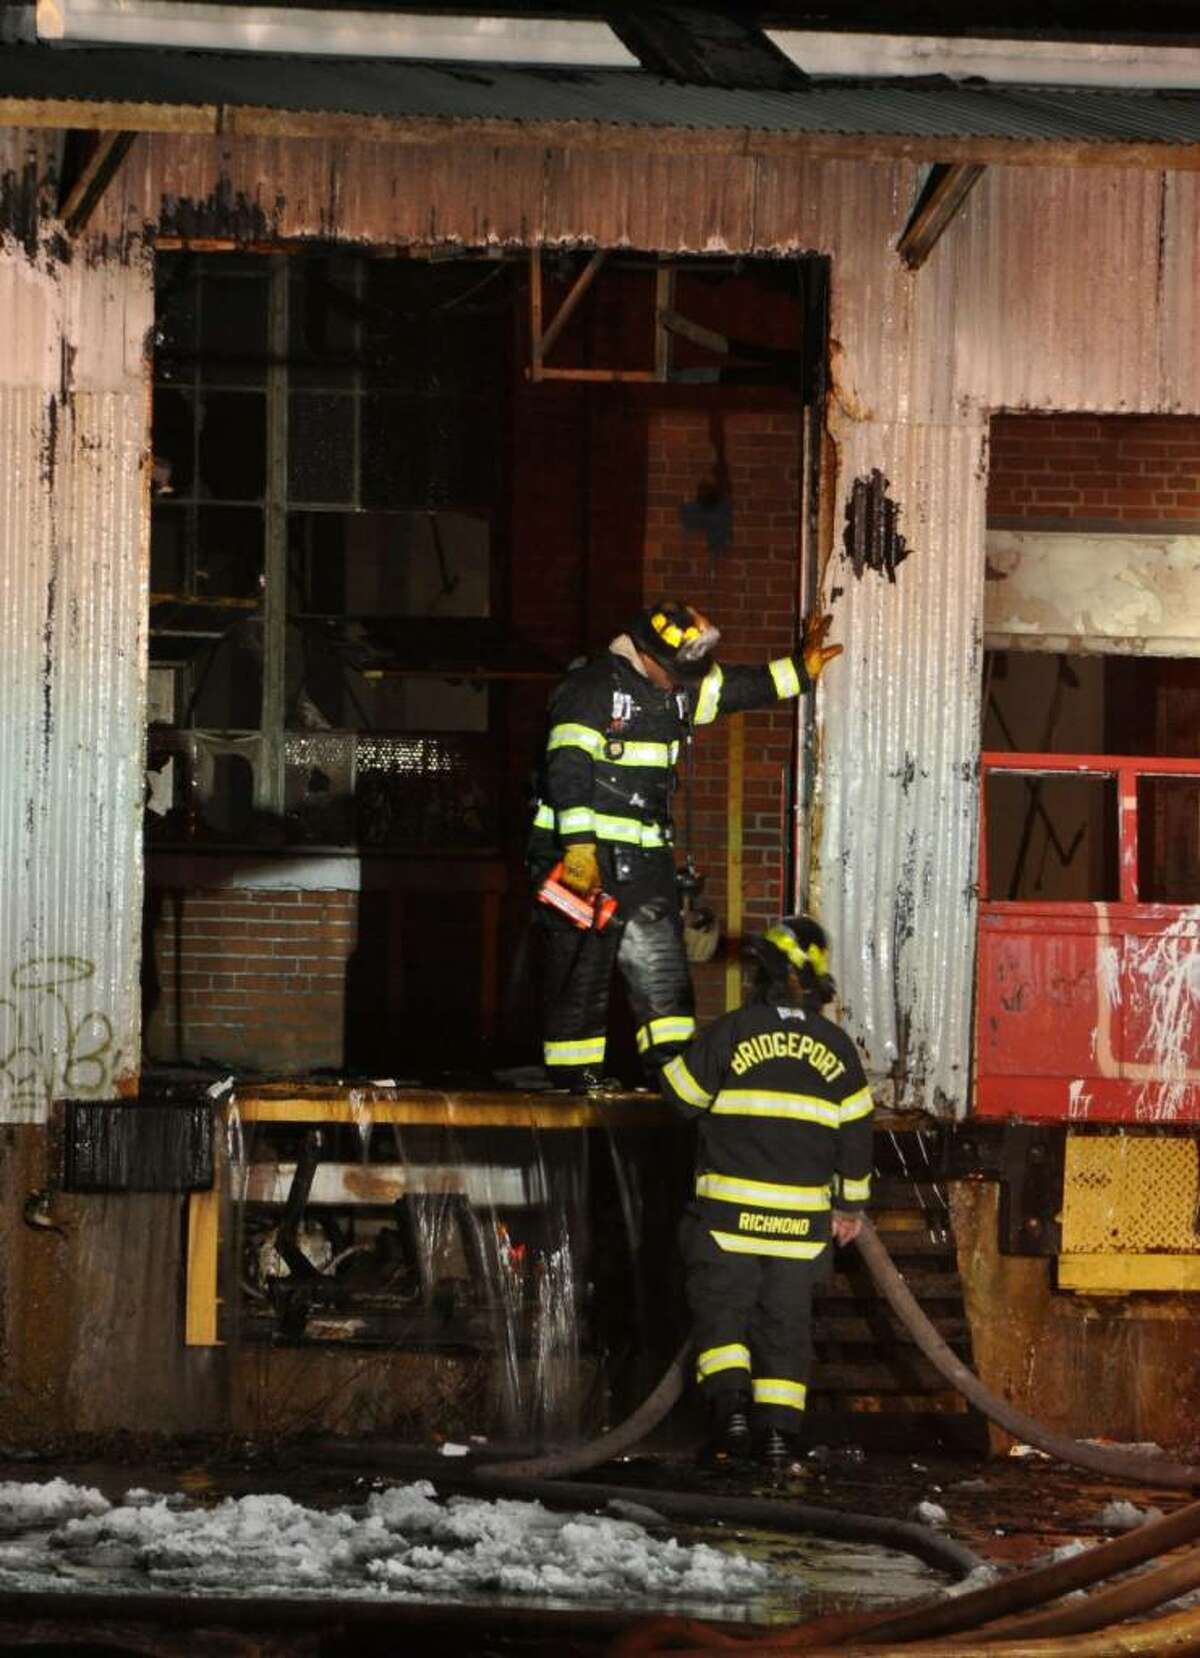 A stubborn blaze heavily damaged a vacant factory Sunday night that fire officials say is the site of many previous fires. The fire at the corner of Seaview Avenue and Grant Street broke out about 5:45 p.m. and at one point was